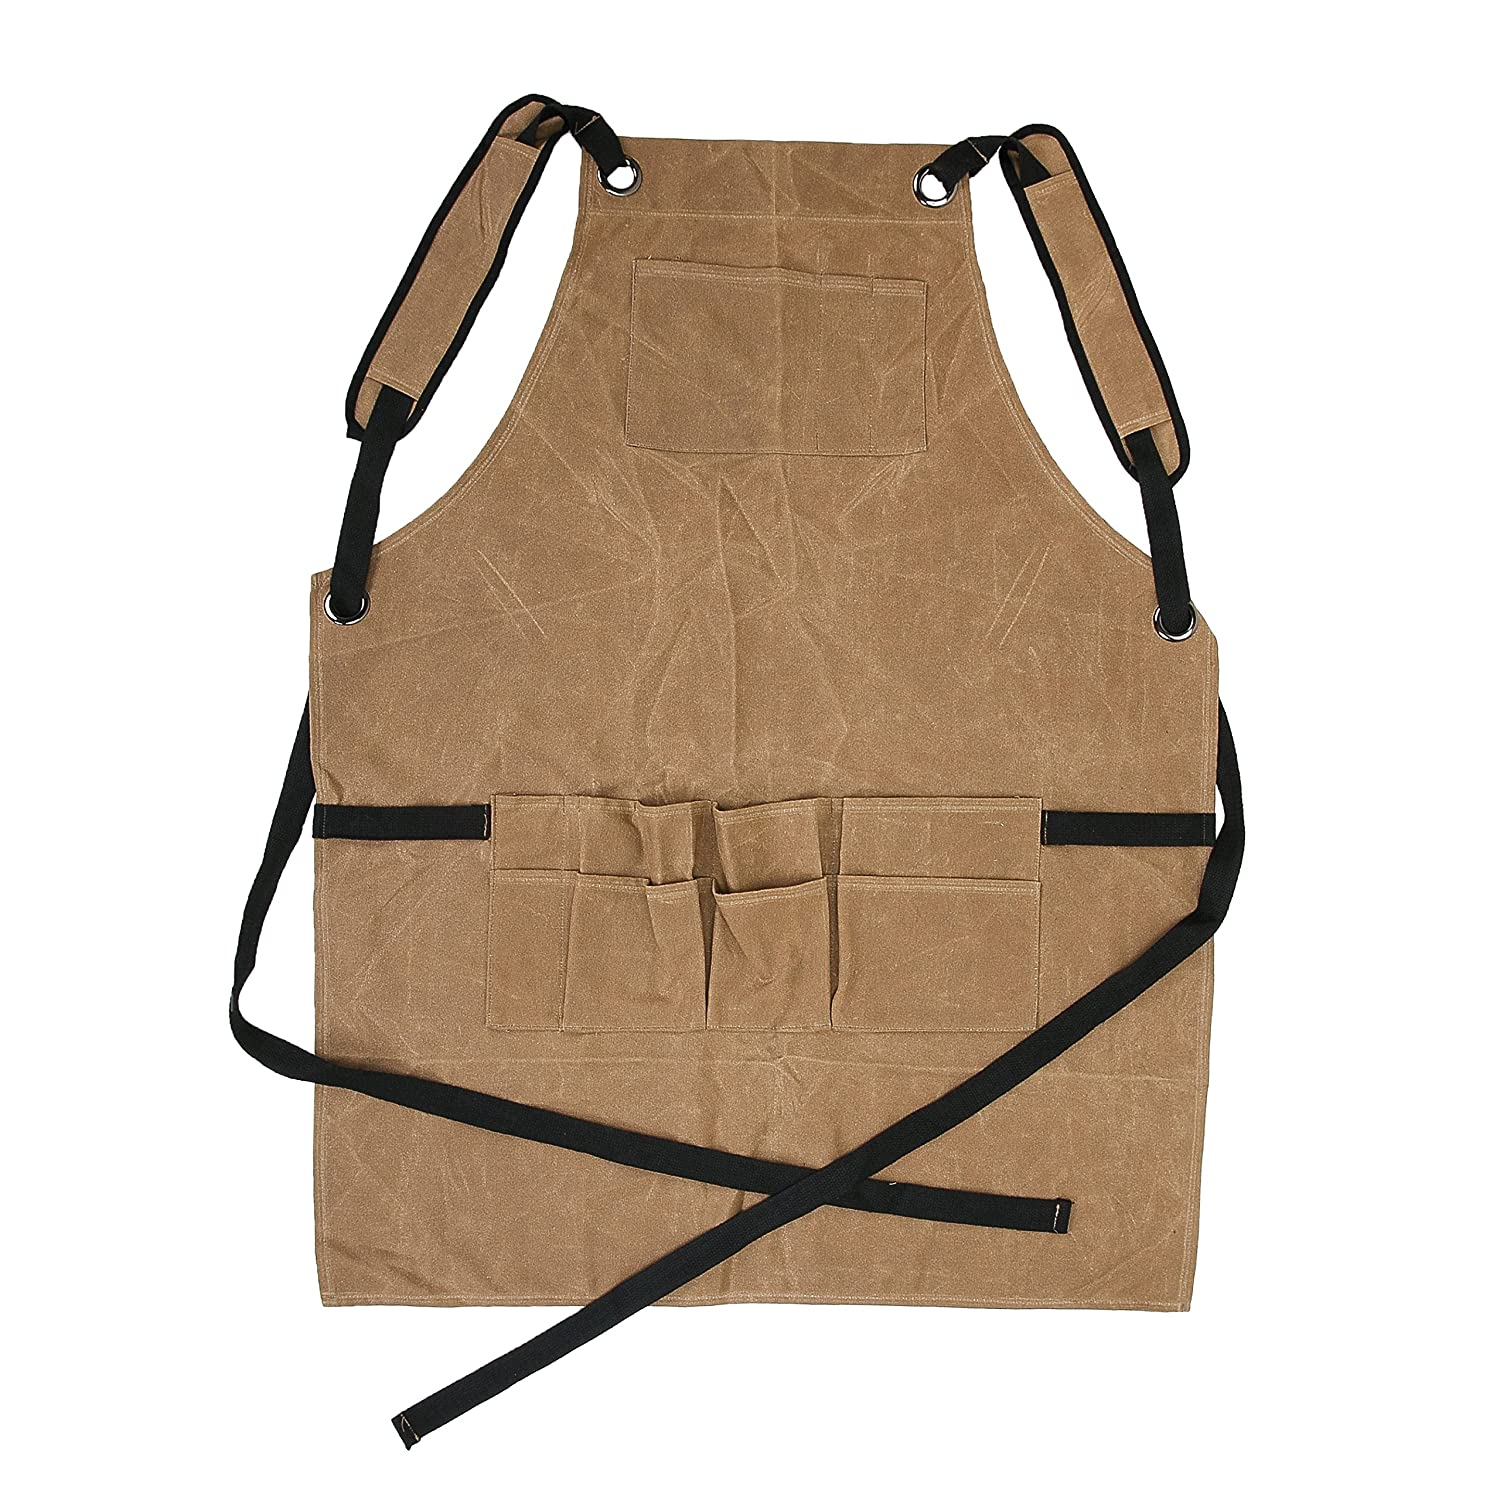 Adjustable Woodworking /& Machinist Shop Apron with Tool Pockets WQ40 ZhuoLang Heavy Duty Tool Apron 16oz Waxed Canvas Work Apron for Men